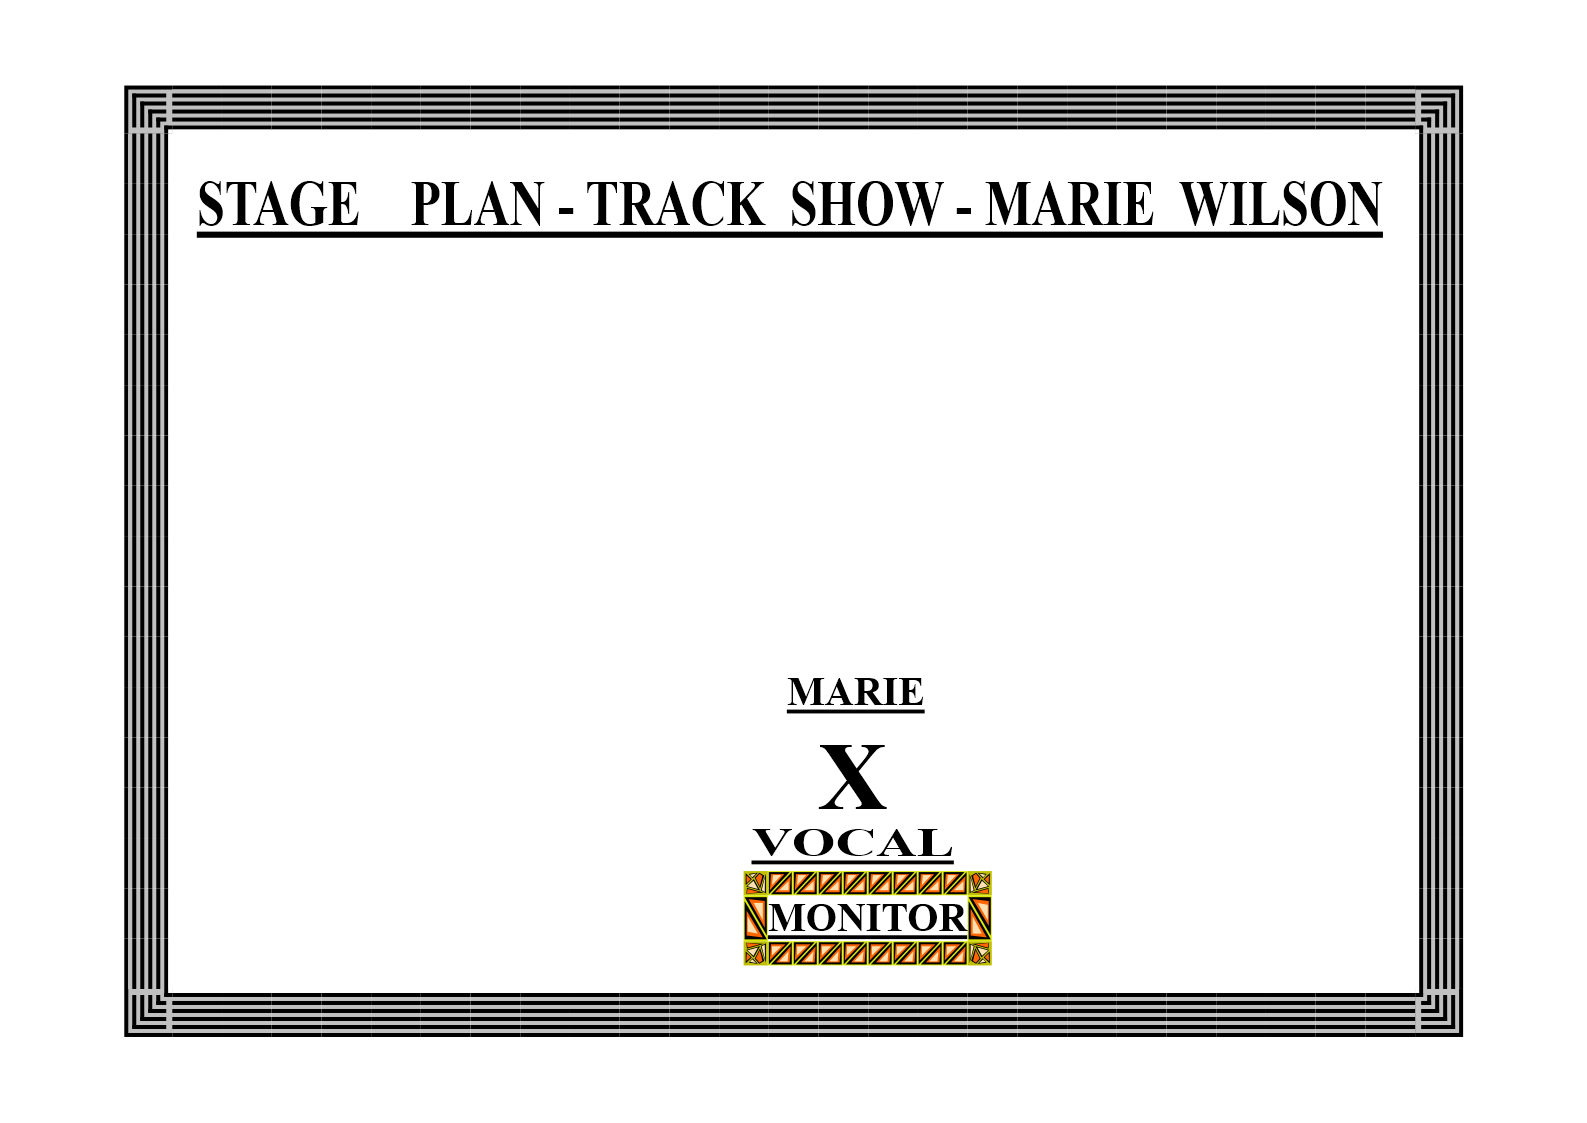 MARIE WILSON - TRACK SHOW